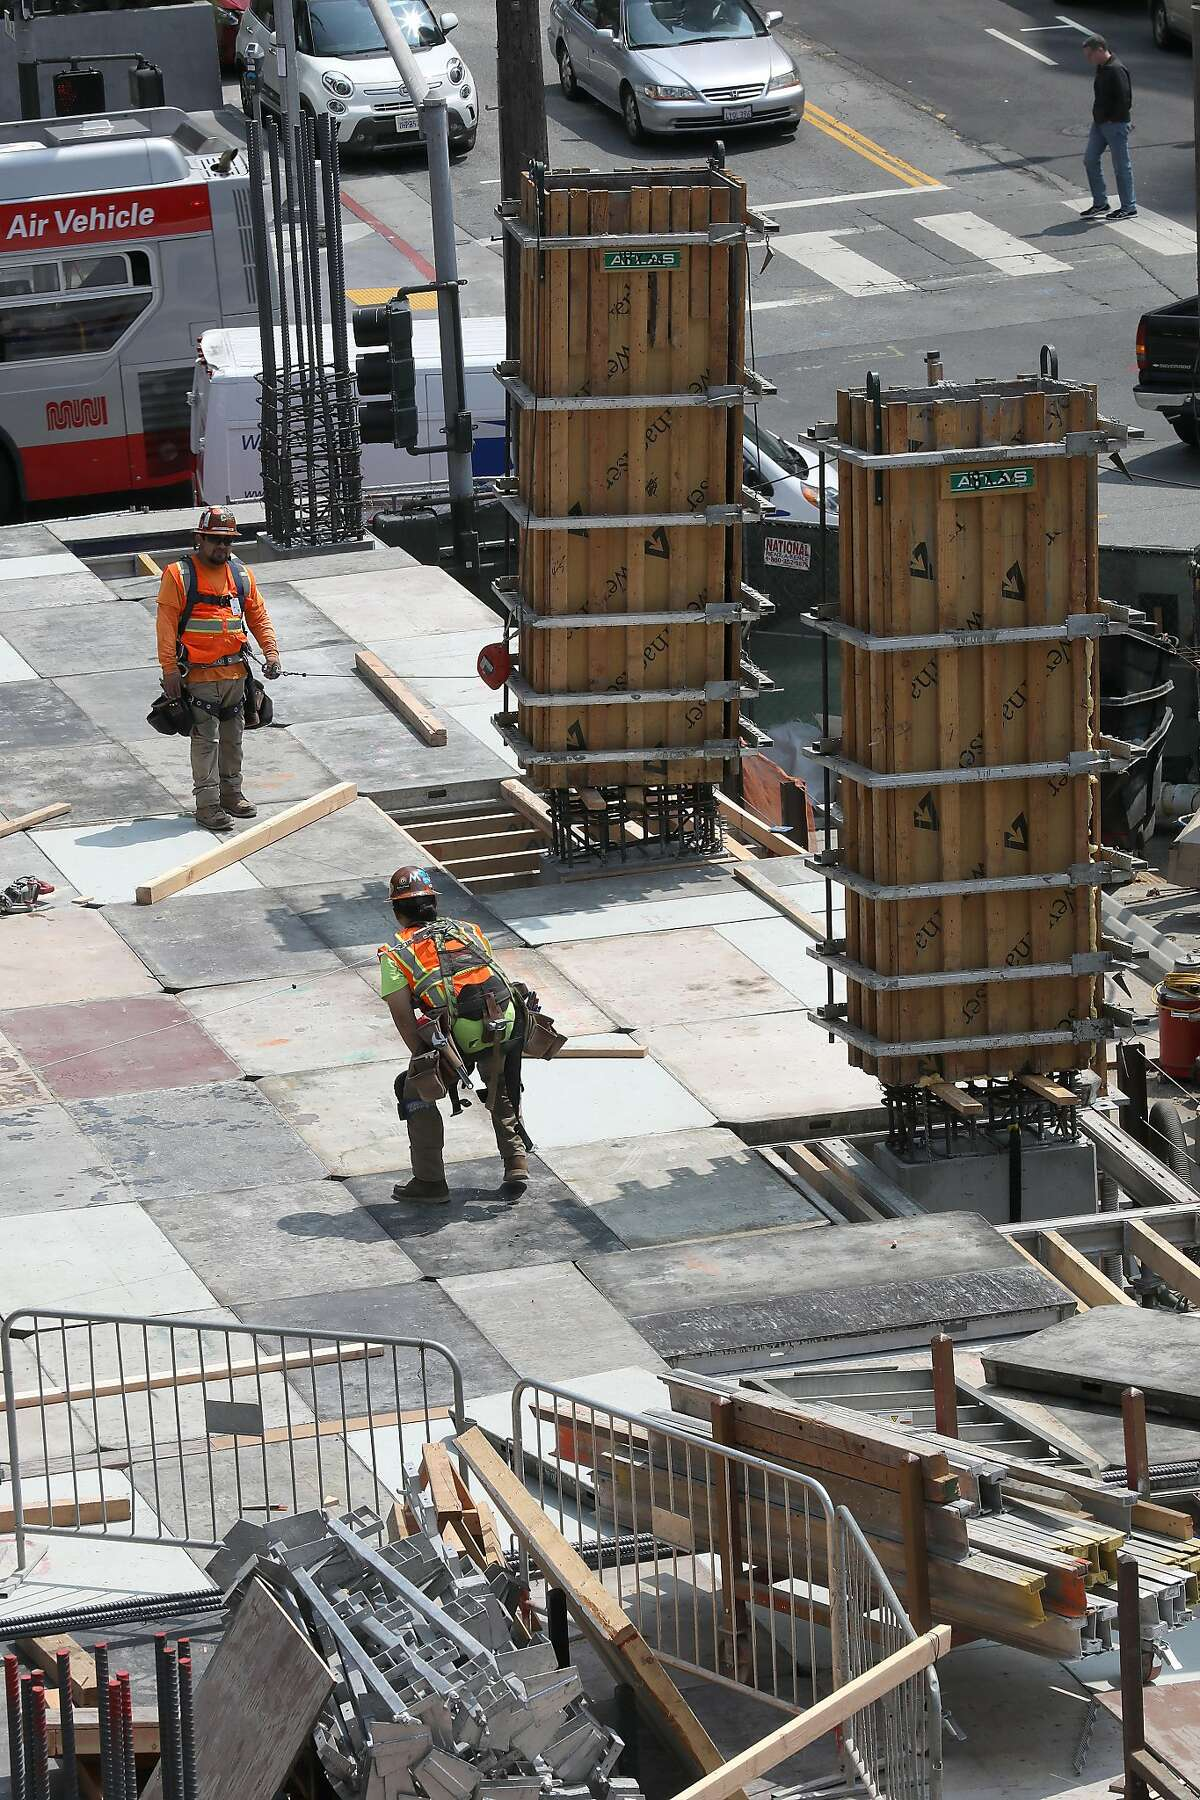 Construction workers next to columns at 160 Folsom St., a former parking lot near the Temporary Transbay Transit Center, where a condo tower is under construction on Friday, Aug. 24, 2018 in San Francisco, Calif.